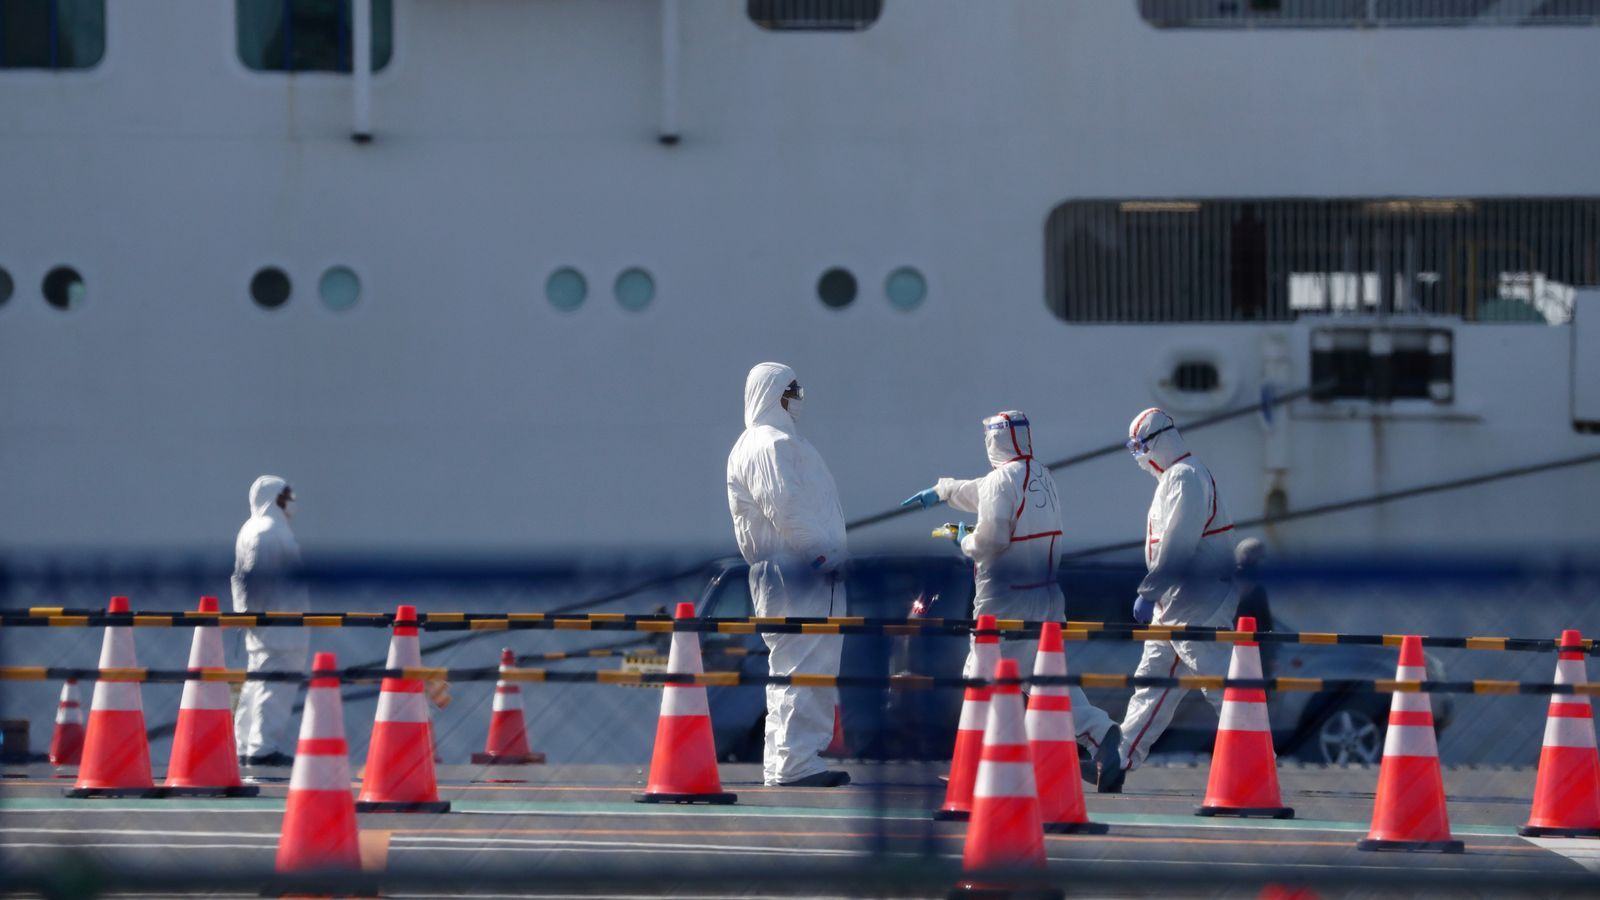 Coronavirus: Two passengers who were on quarantined cruise have died - report